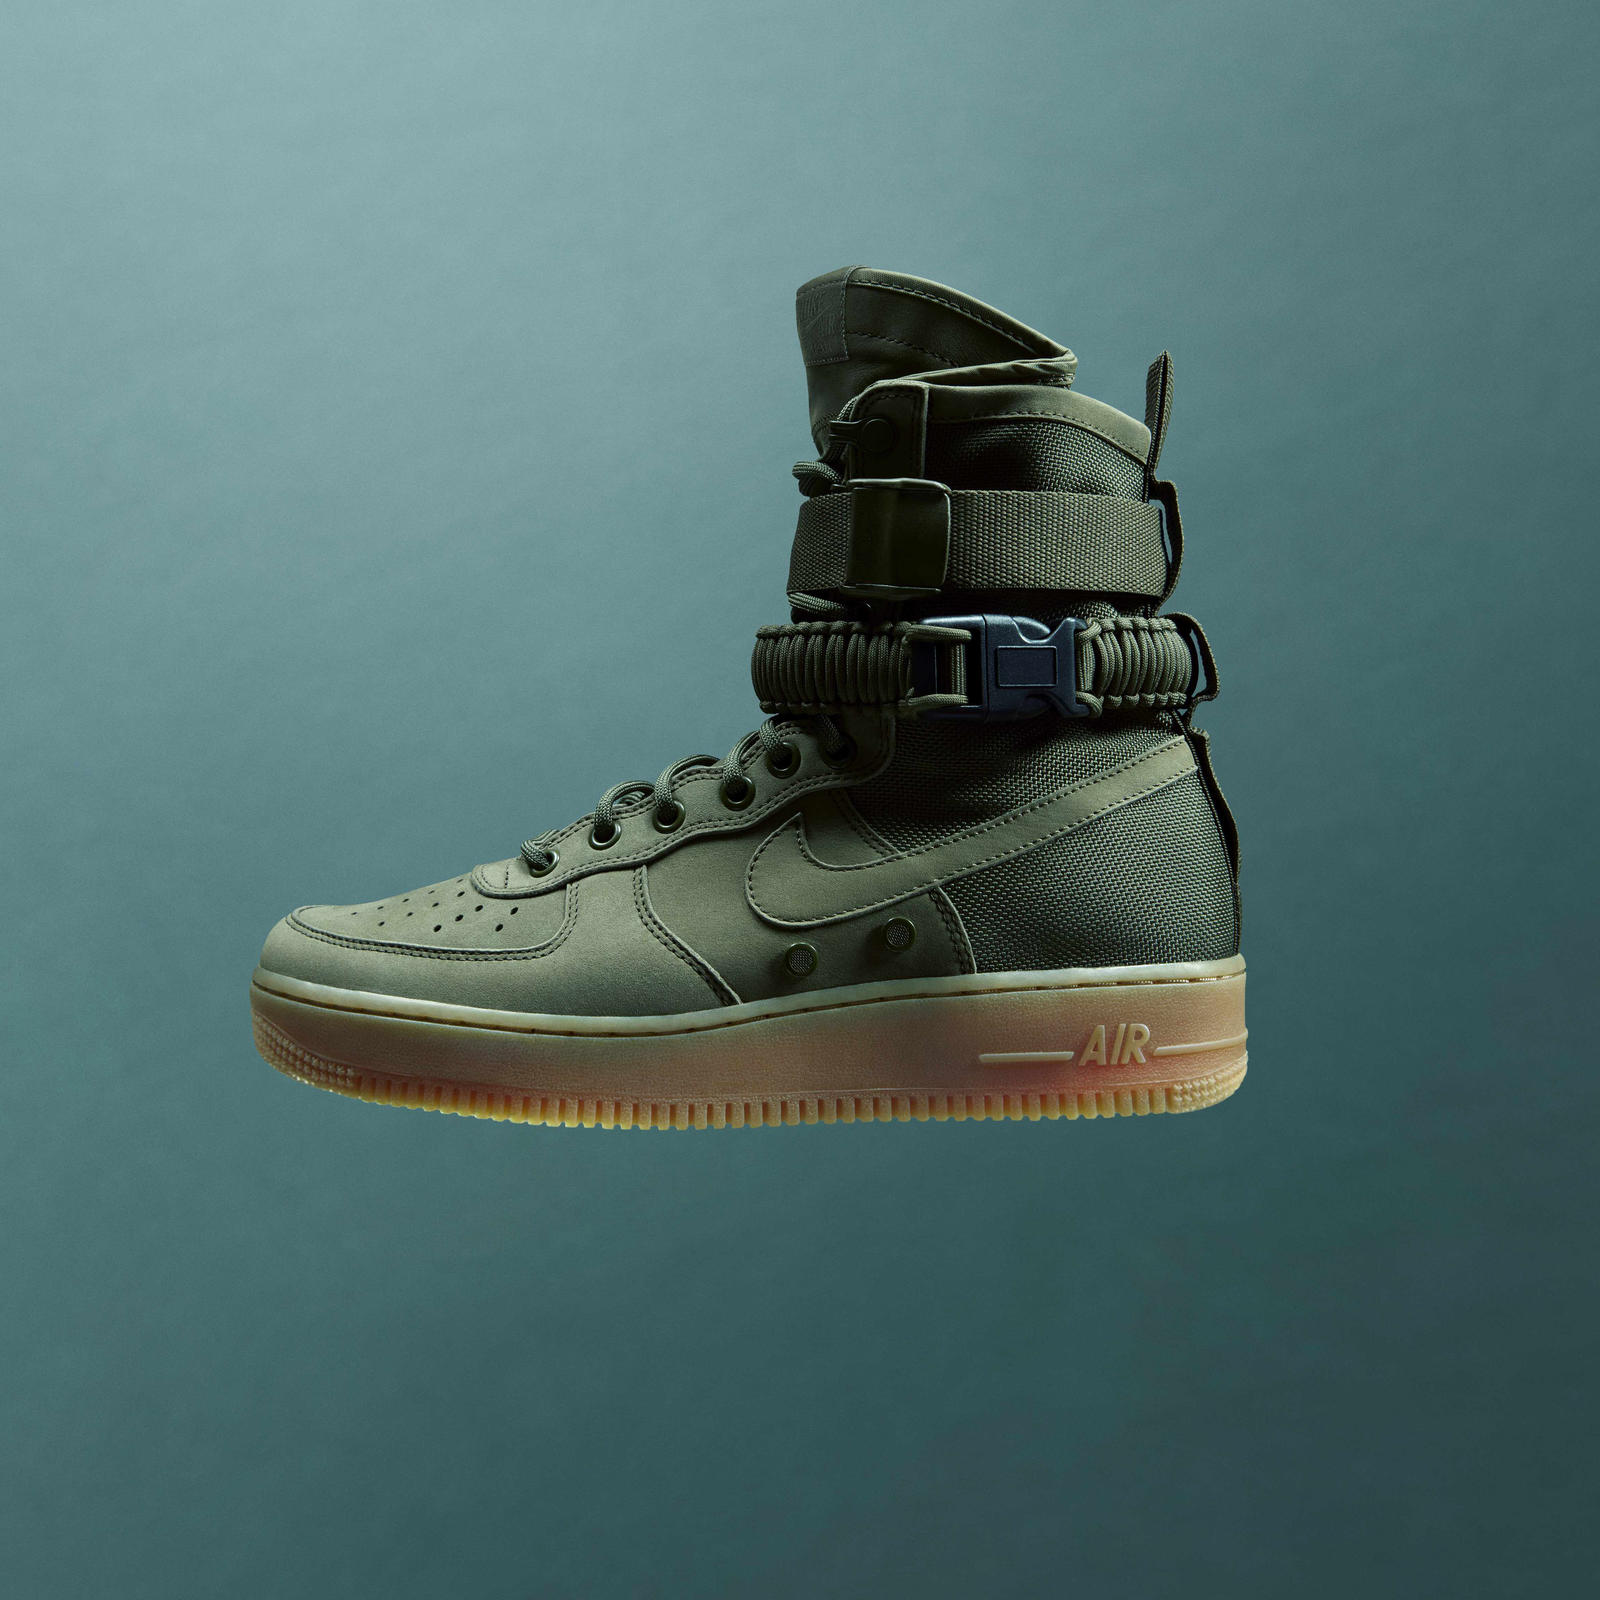 air force one sf af 1